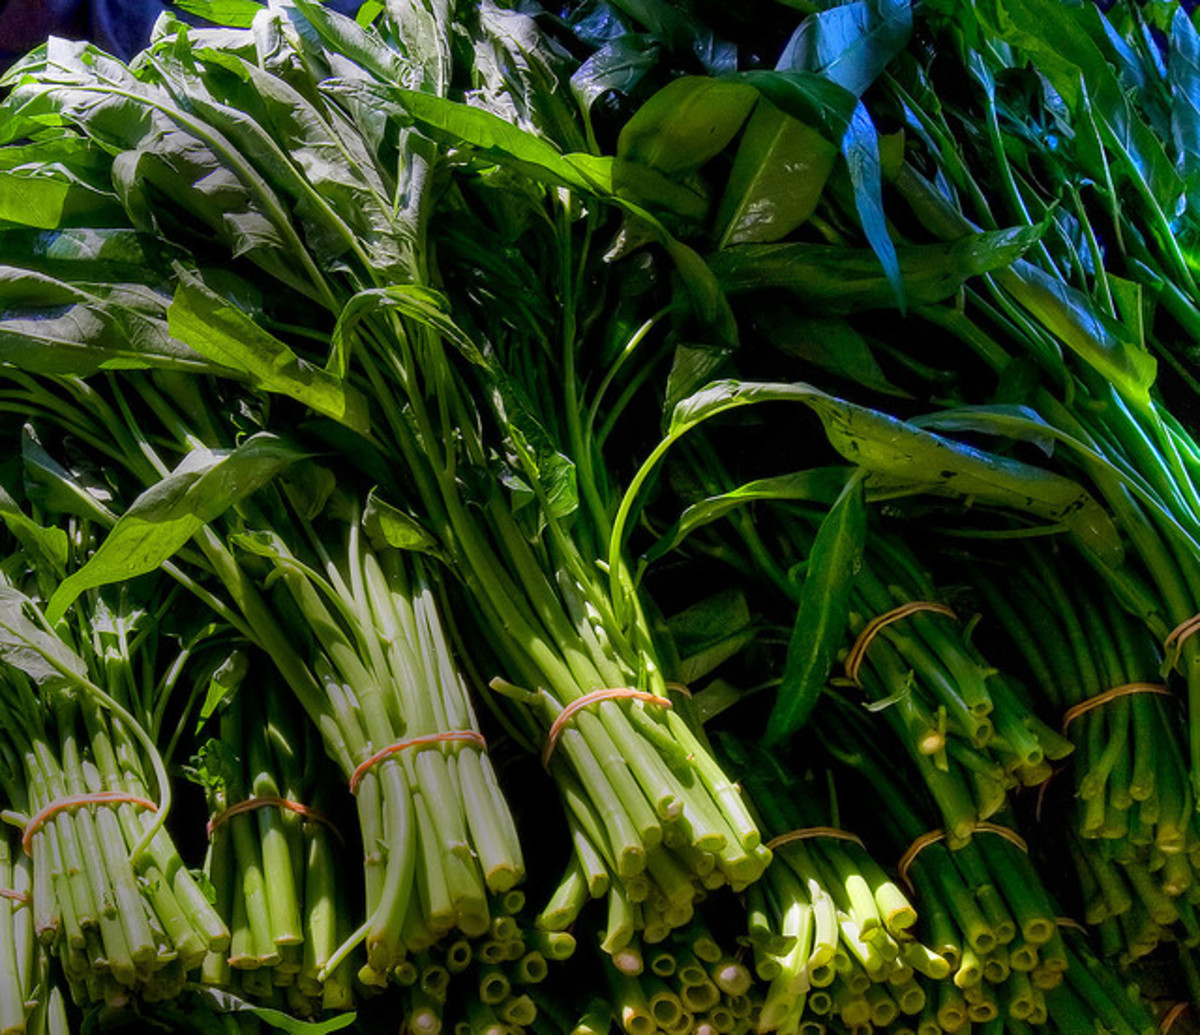 Fresh Ong Choy/Water Spinach